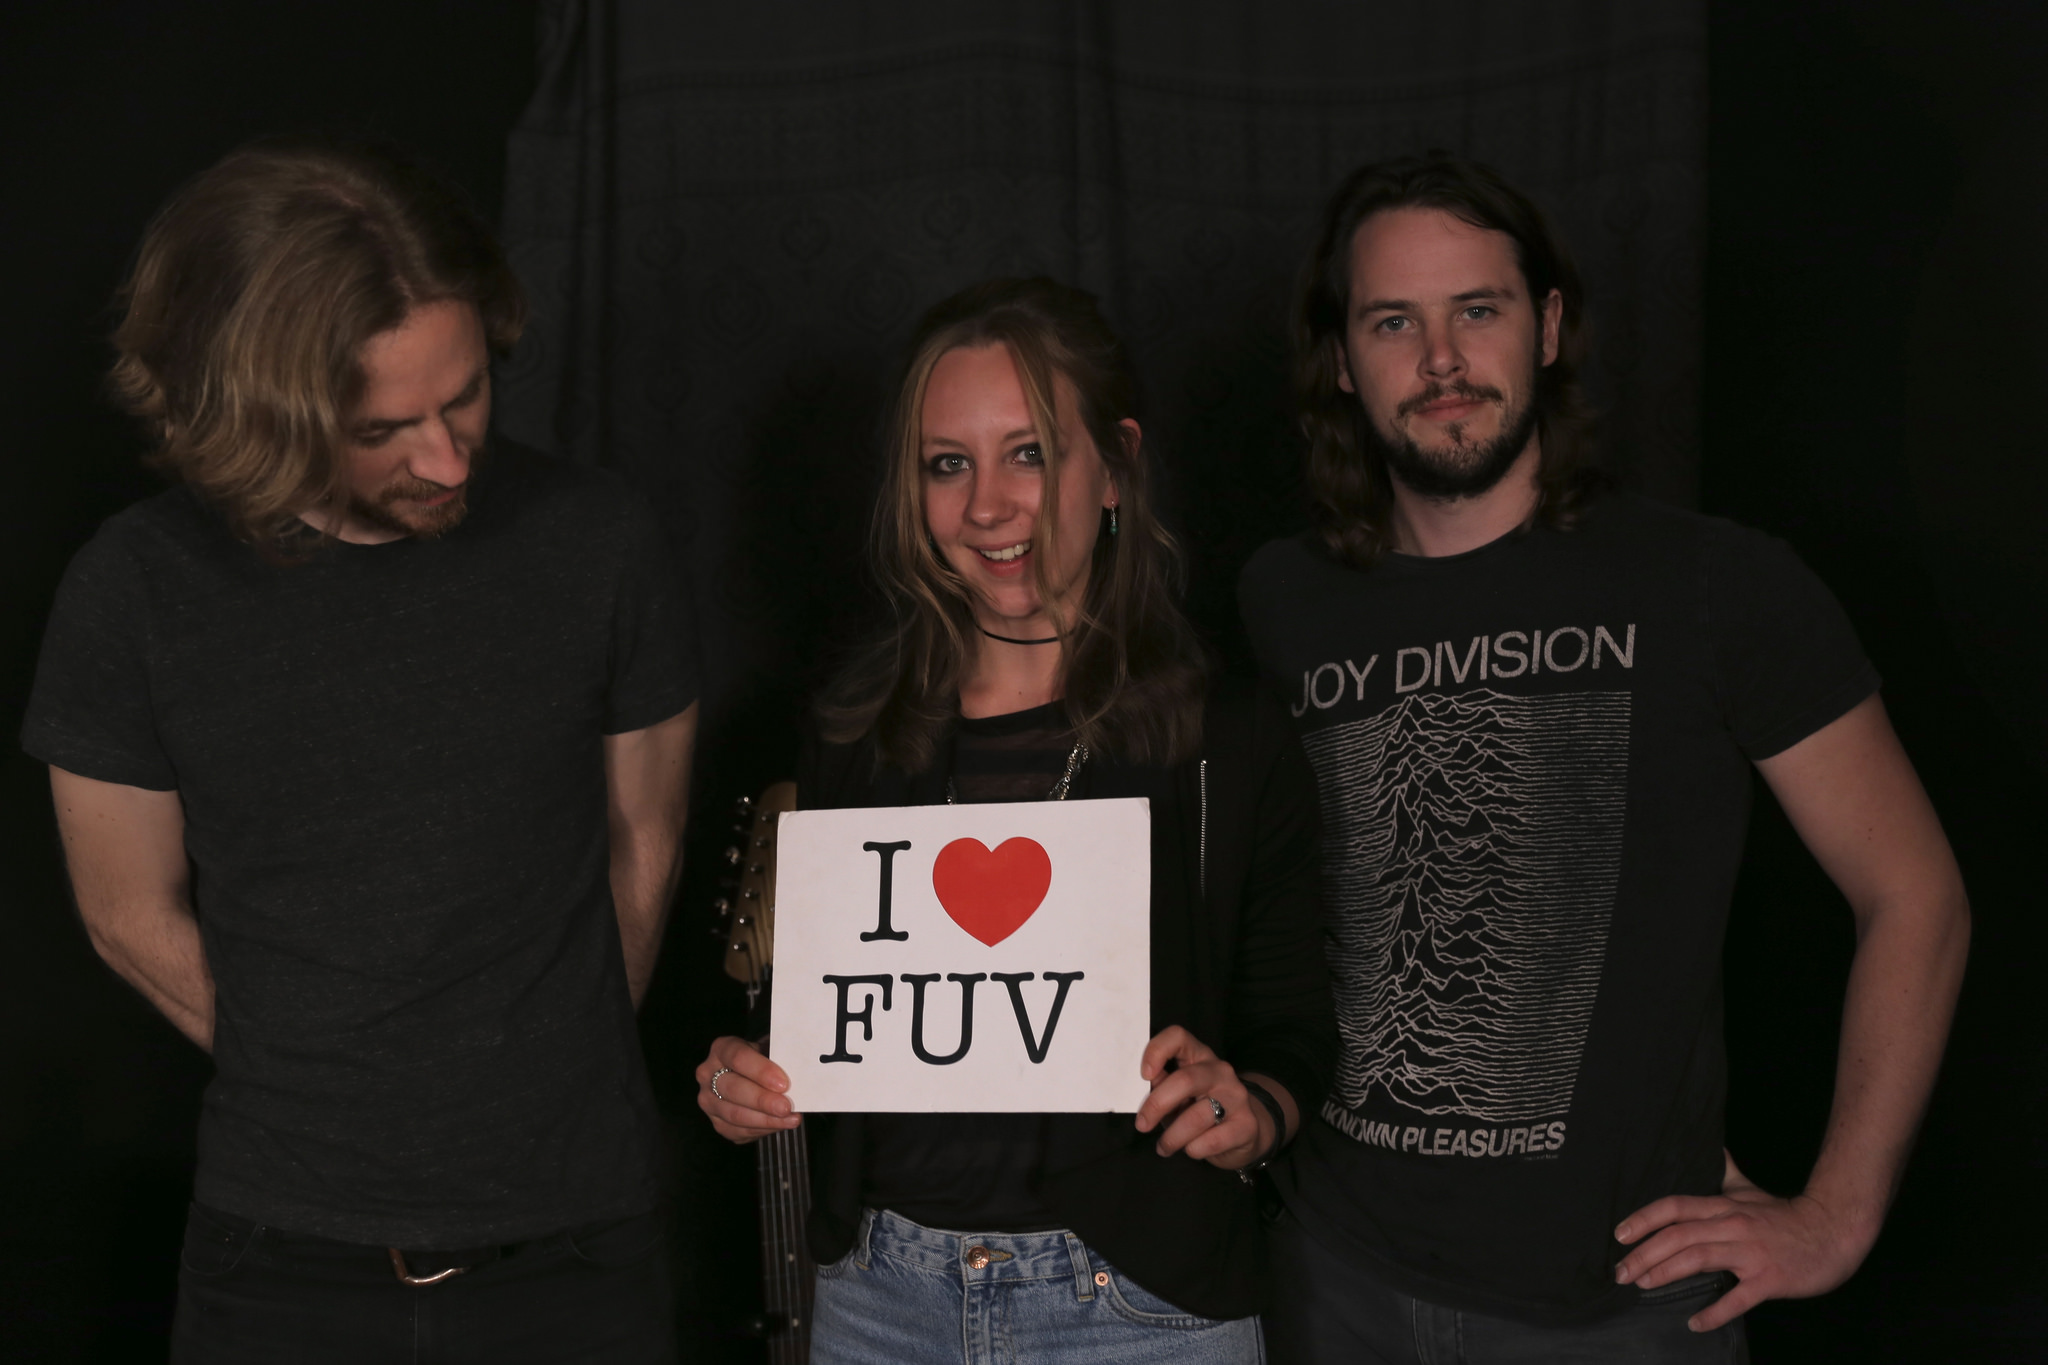 Hear an FUV live session with Lyla Foy tonight at 9.